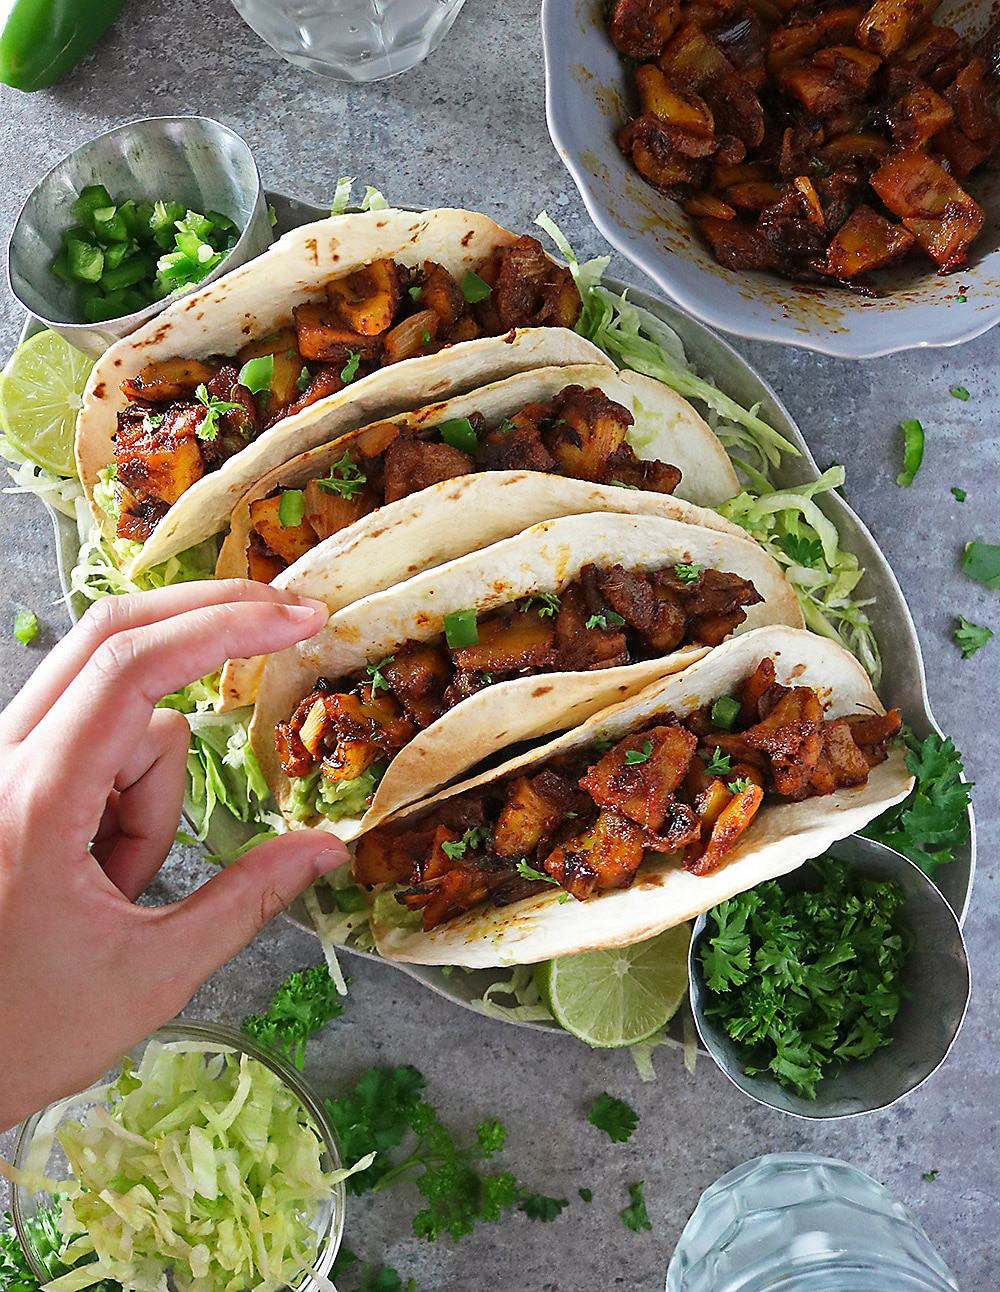 Delicious, spice-filled, Jackfruit Tacos Make for a welcome vegan meal.